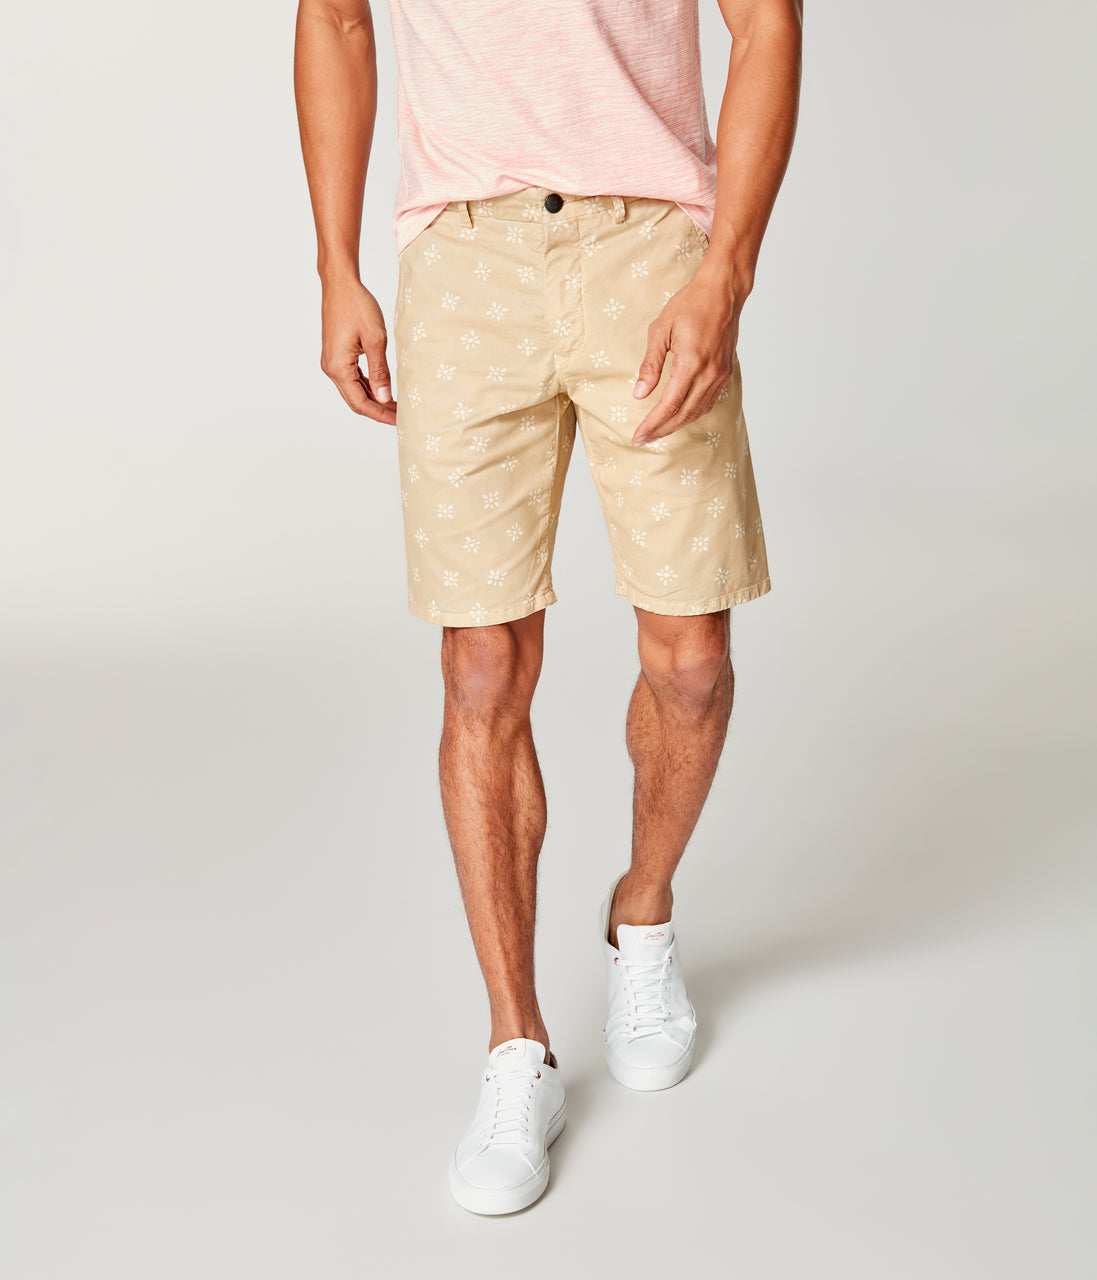 Monaco Stretch Twill Floral Wrap Short - Baja - Good Man Brand - Monaco Stretch Twill Floral Wrap Short - Baja